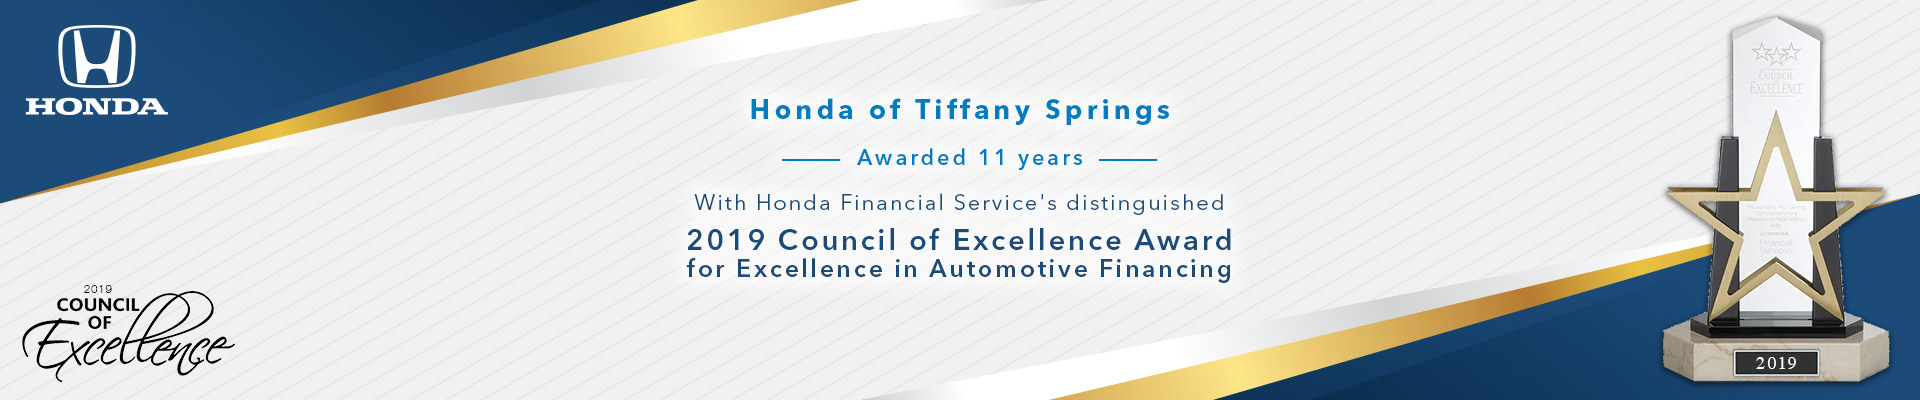 2019 Council of Excellence Award | Honda of Tiffany Springs